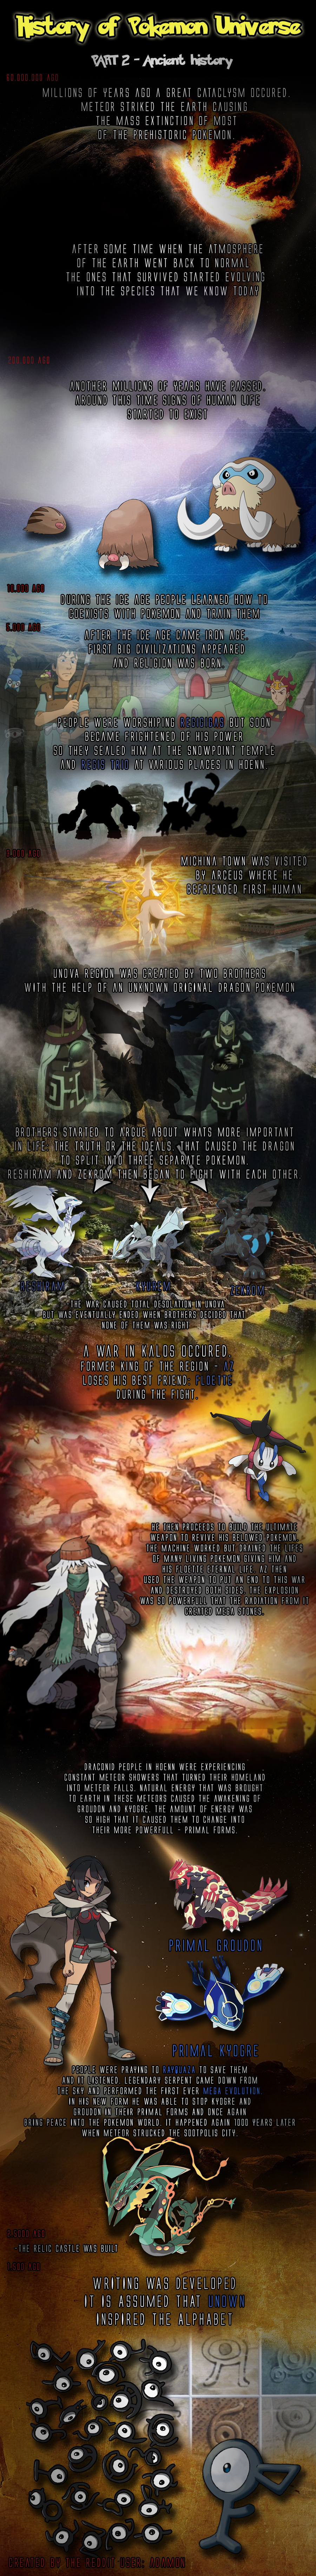 history of pokemon universe infographic part 2 ancient history